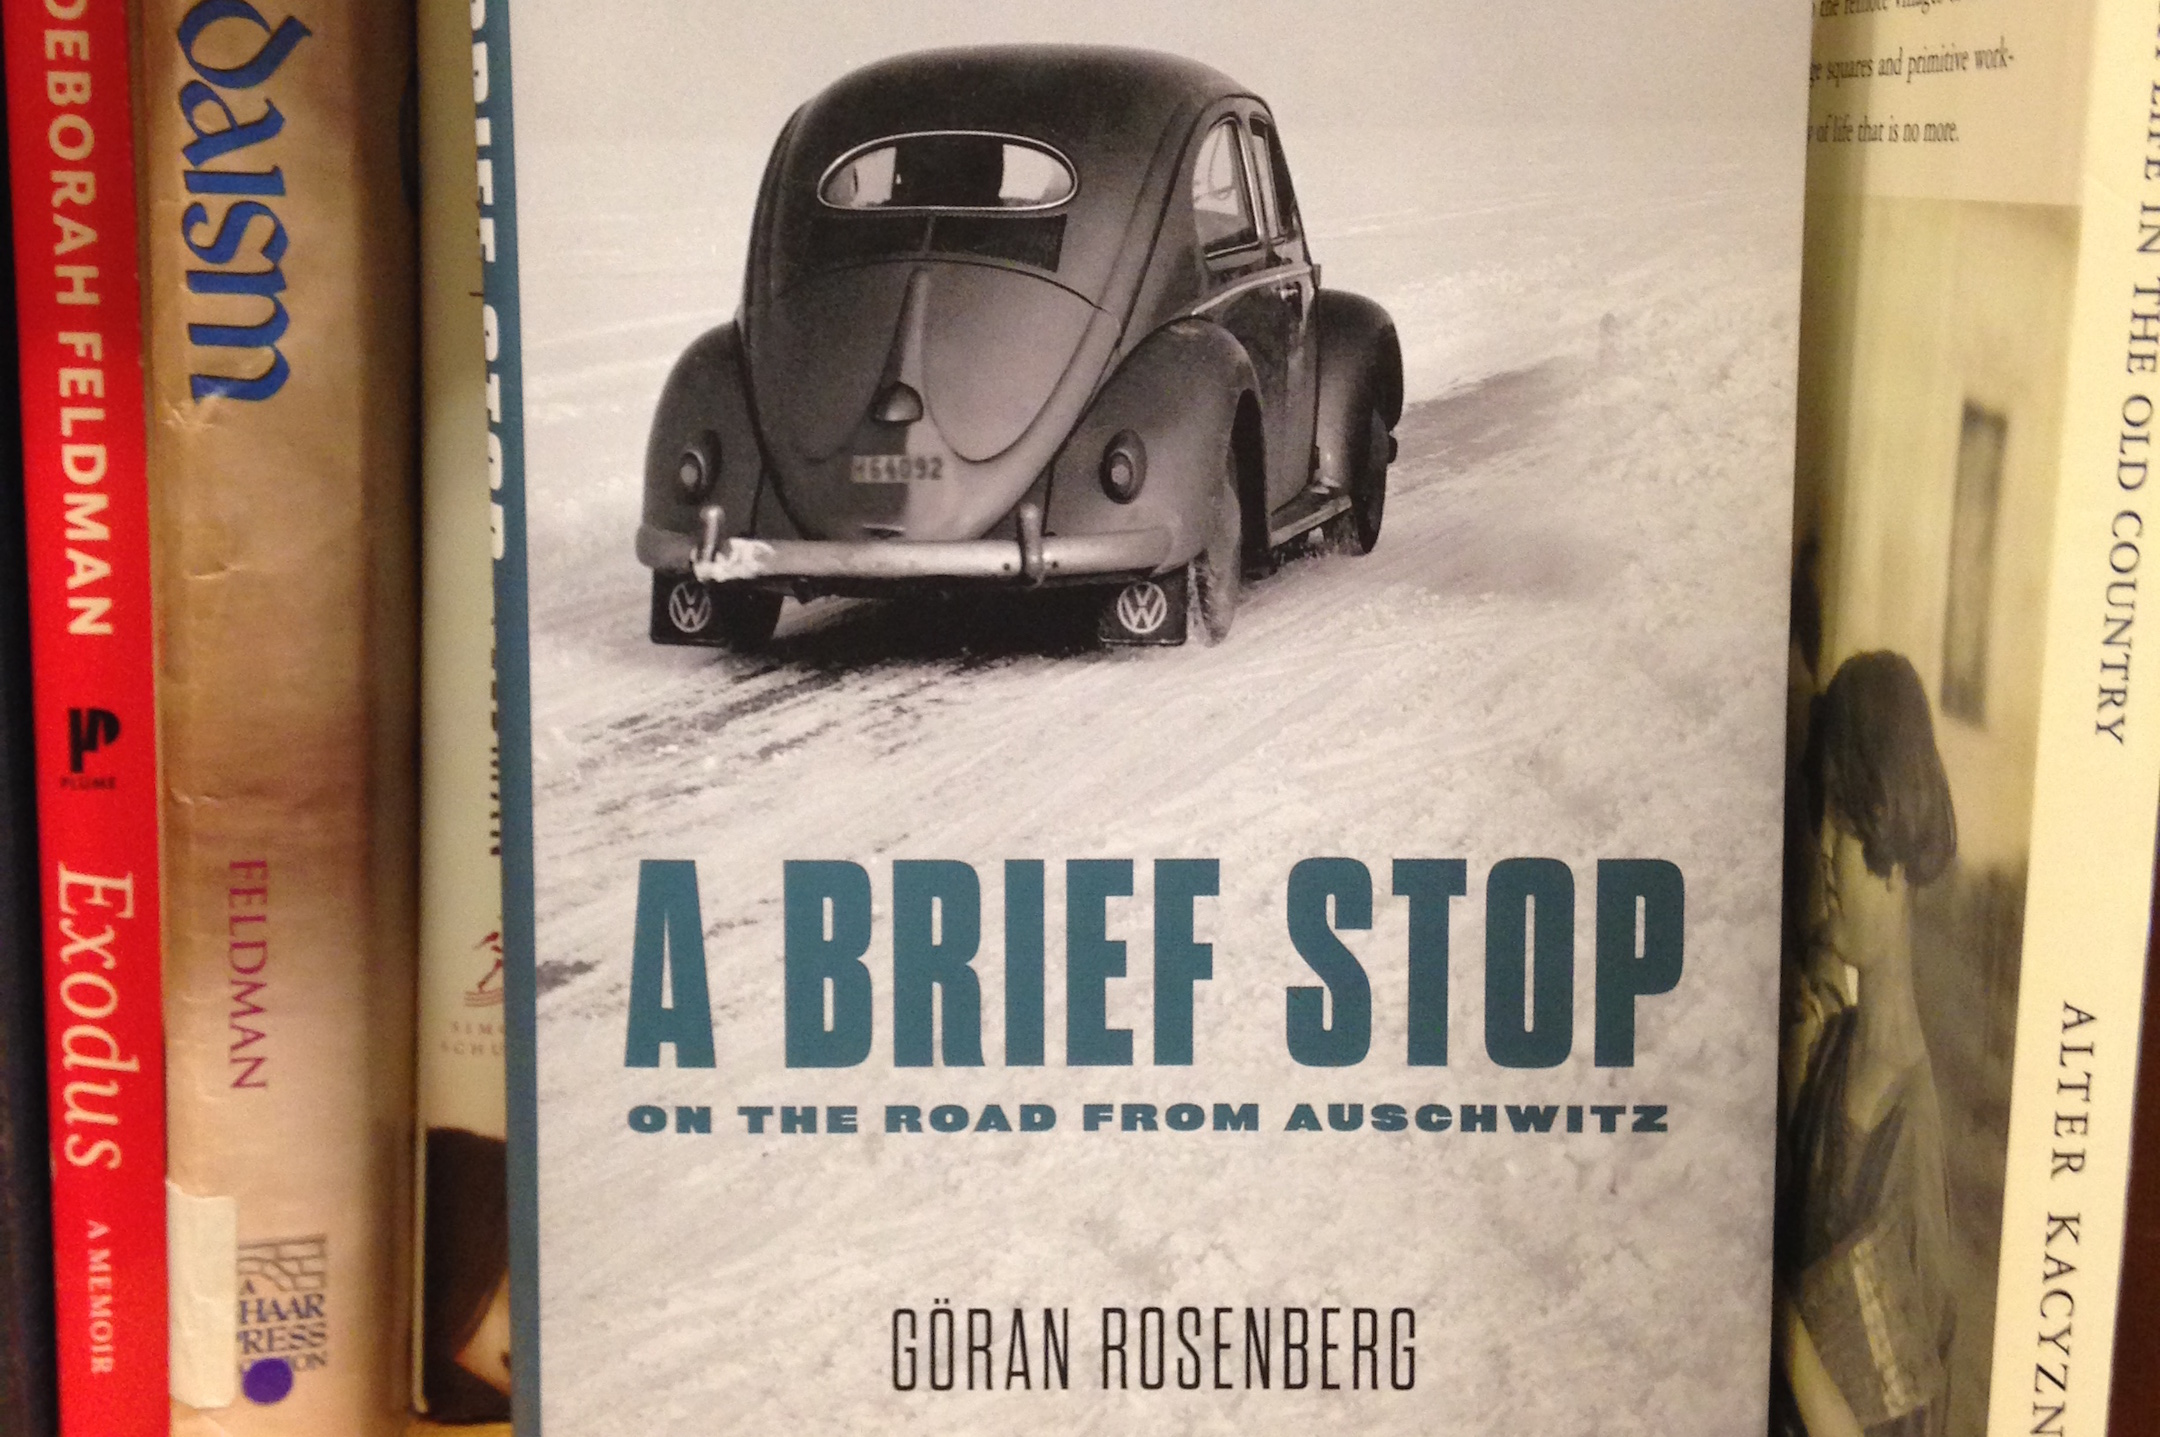 Surviving the Survival on Göran Rosenberg's Road from Auschwitz